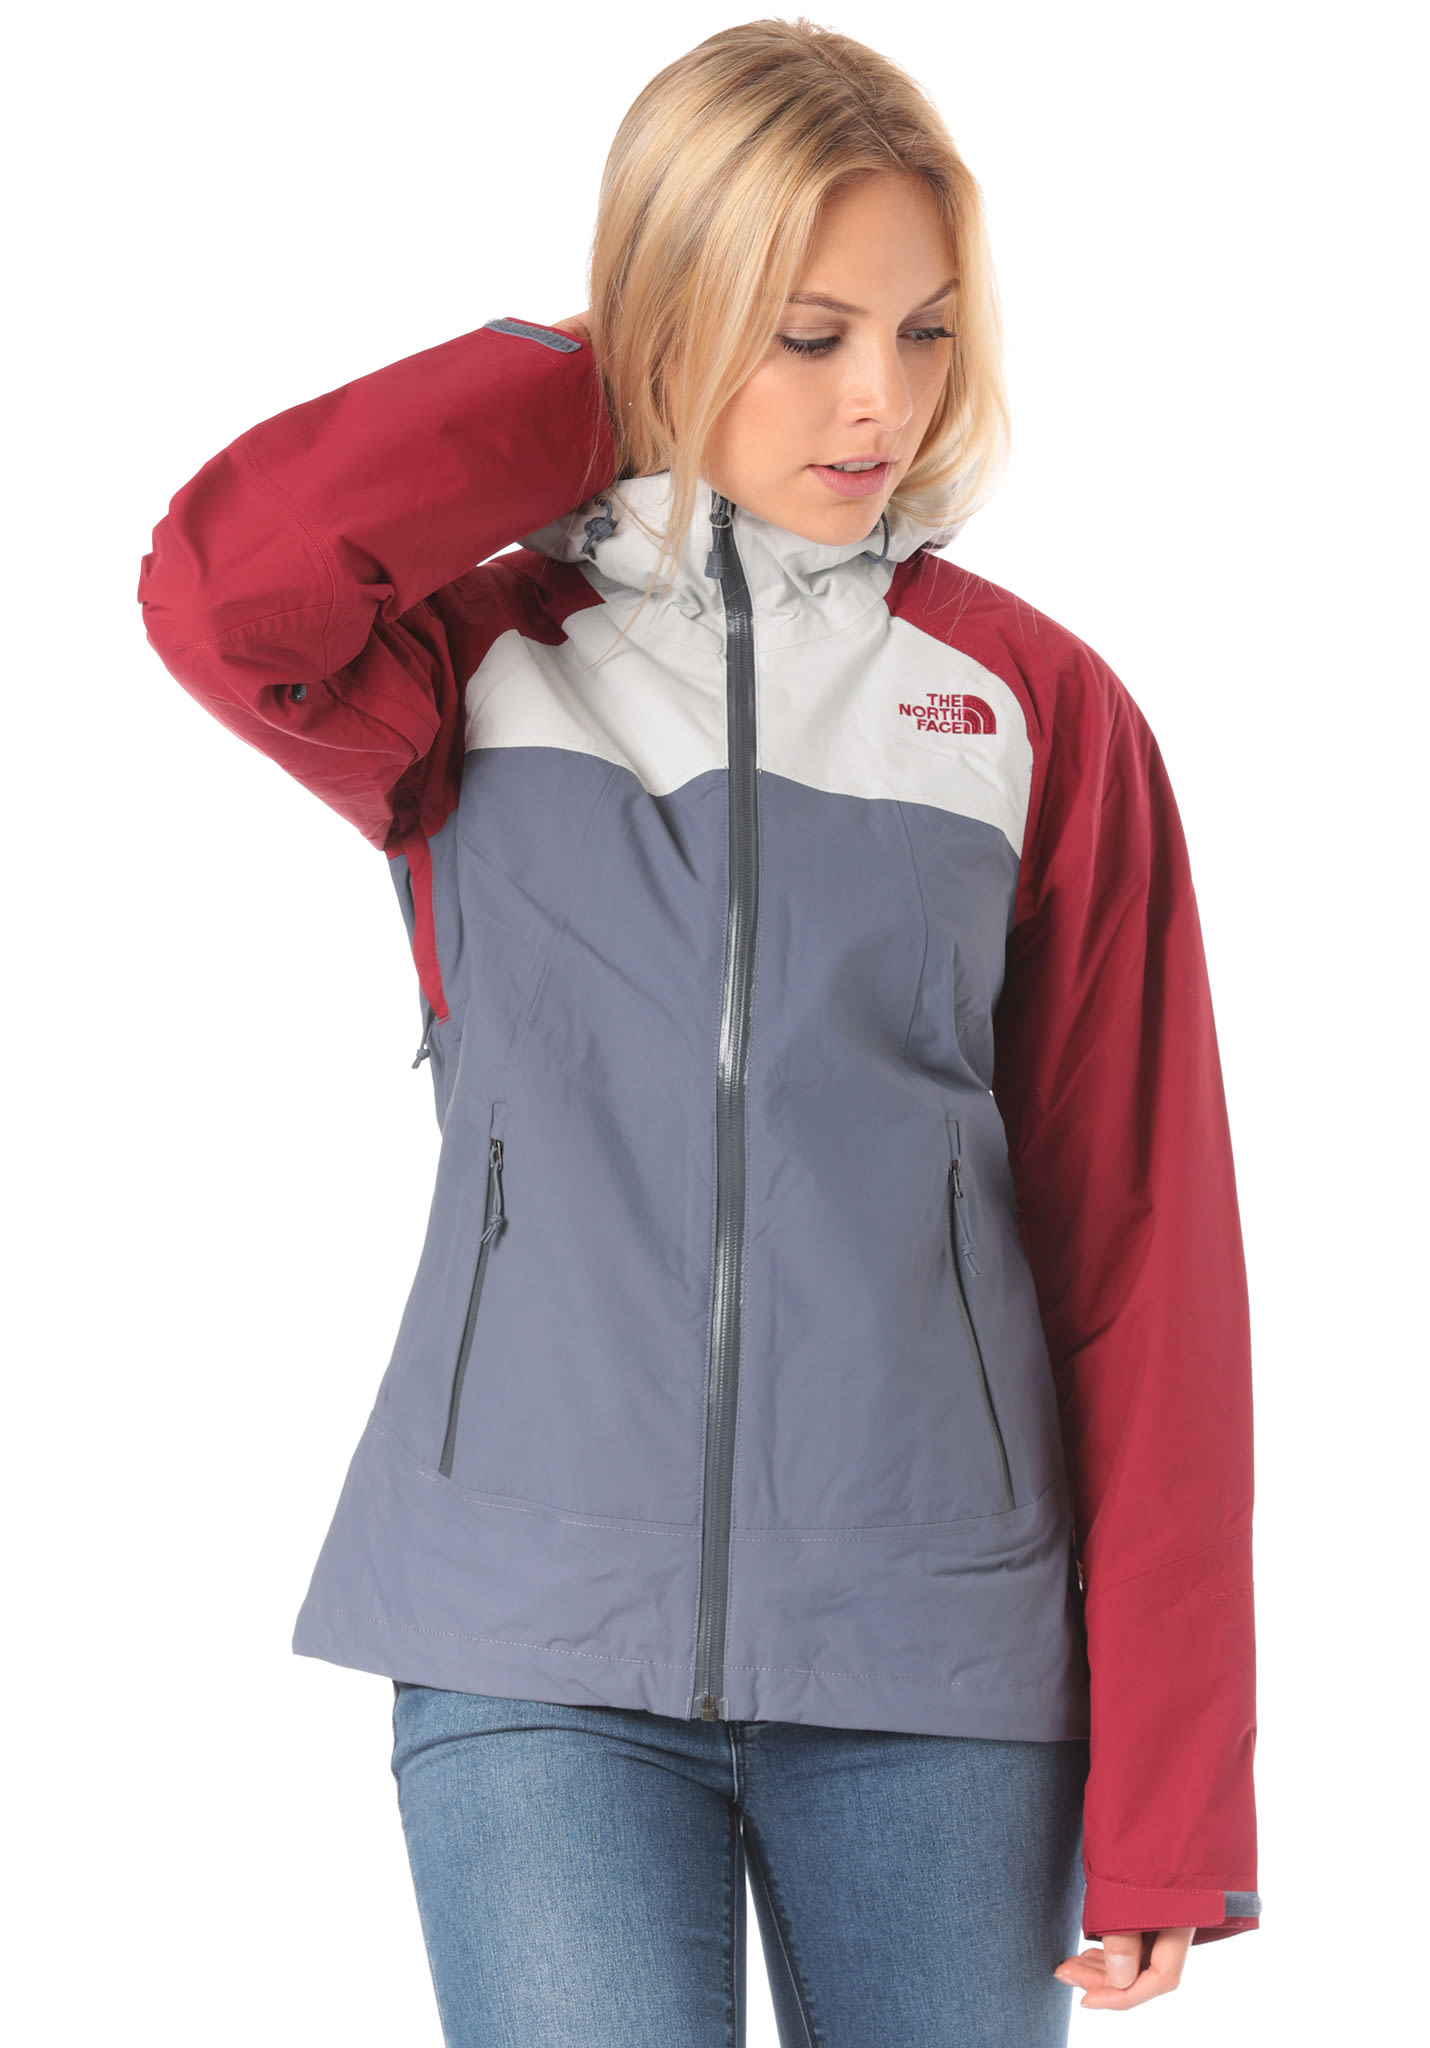 55dce5070f THE NORTH FACE Stratos - Veste fonctionnelle pour Femme - Gris - Planet  Sports